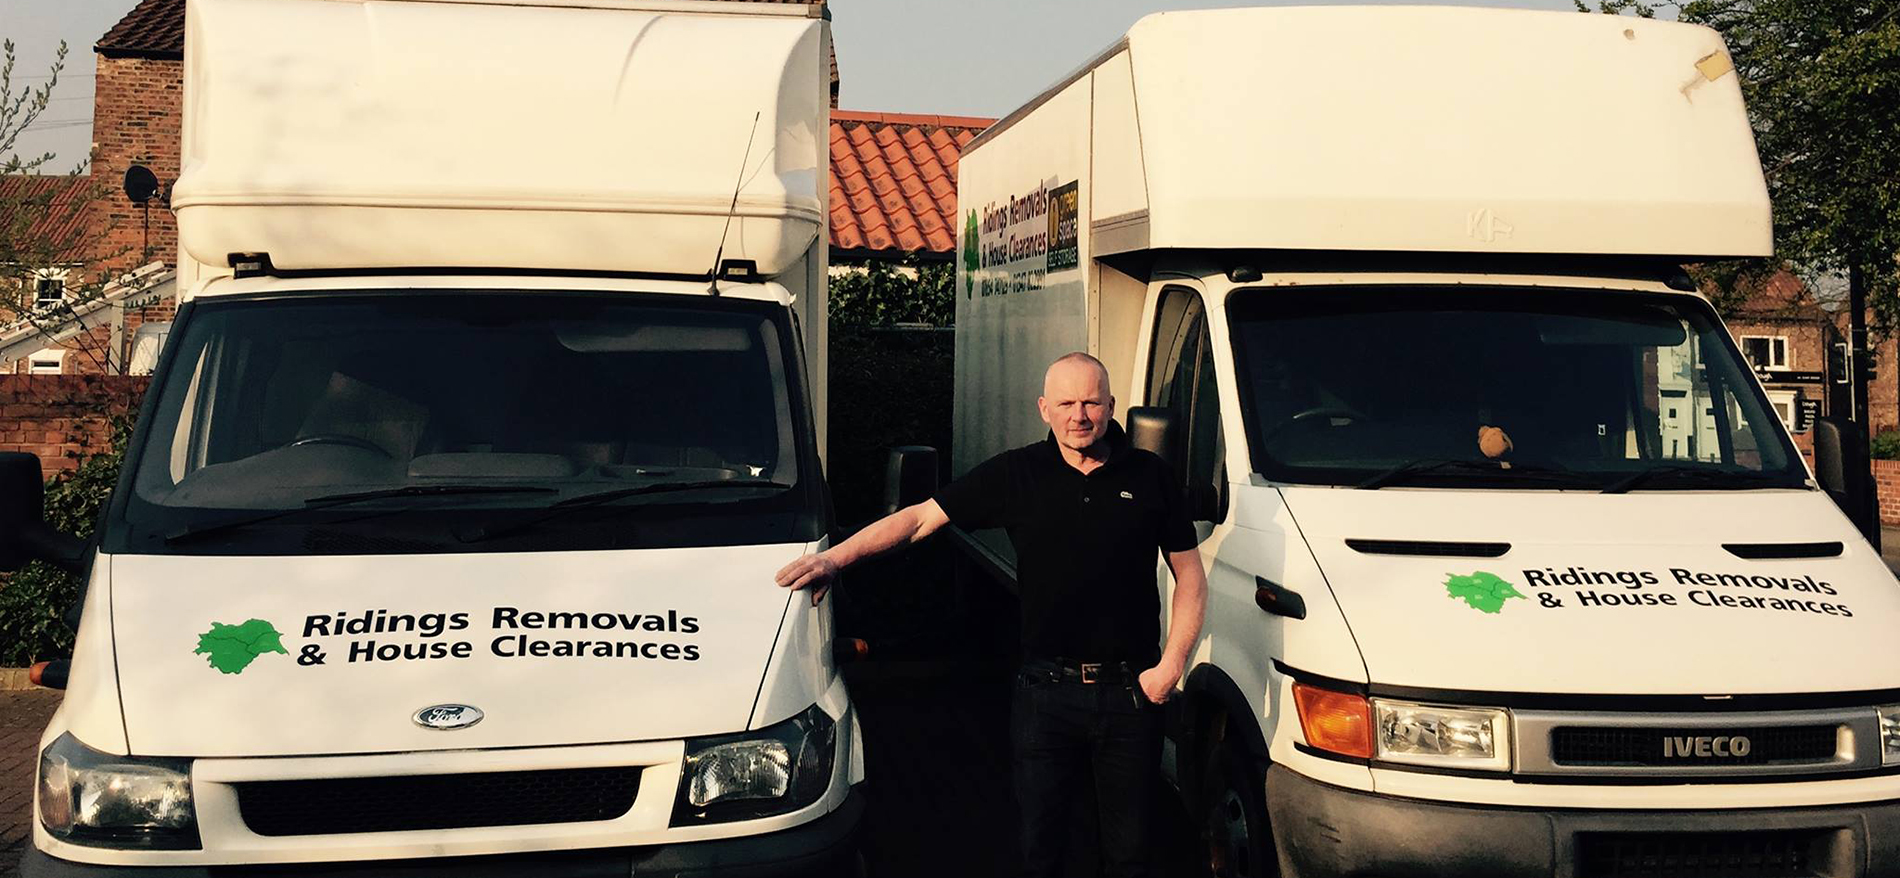 HOUSE CLEARANCE AND REMOVALS